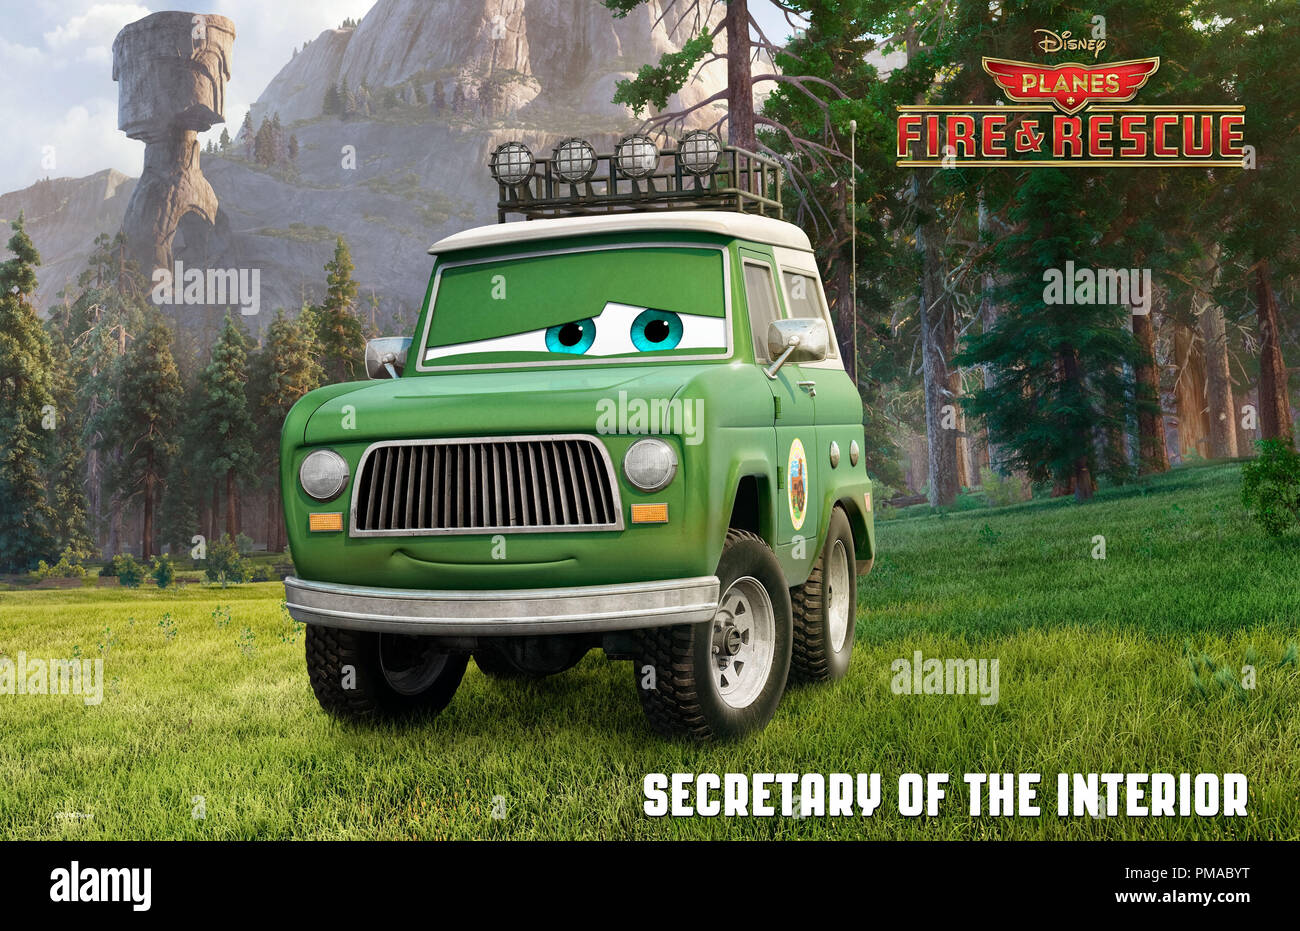 'PLANES FIRE & RESCUE' The Secretary of the Interior (voice of Fred Willard) has many responsibilities, but none is more important than overseeing the National Parks. This rugged outdoorsman loves being in nature; he spends most of his time away from his office in Washington, visiting the National Forests and Parks and helping to spread his message of conservation. © 2014 Disney Enterprises, Inc. All Rights Reserved. - Stock Image